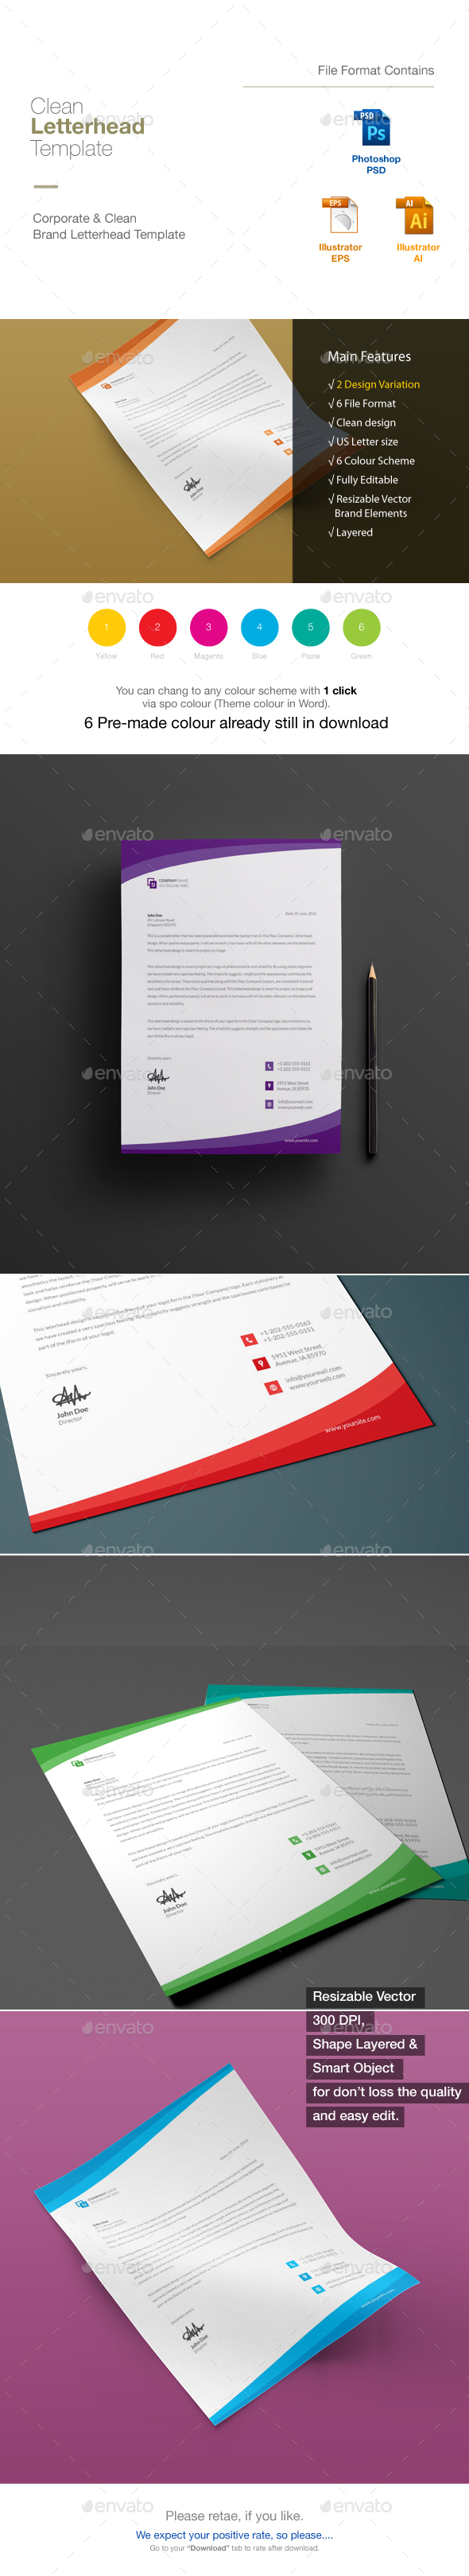 Letterhead by dreamlab bd graphicriver letterhead stationery print templates spiritdancerdesigns Images